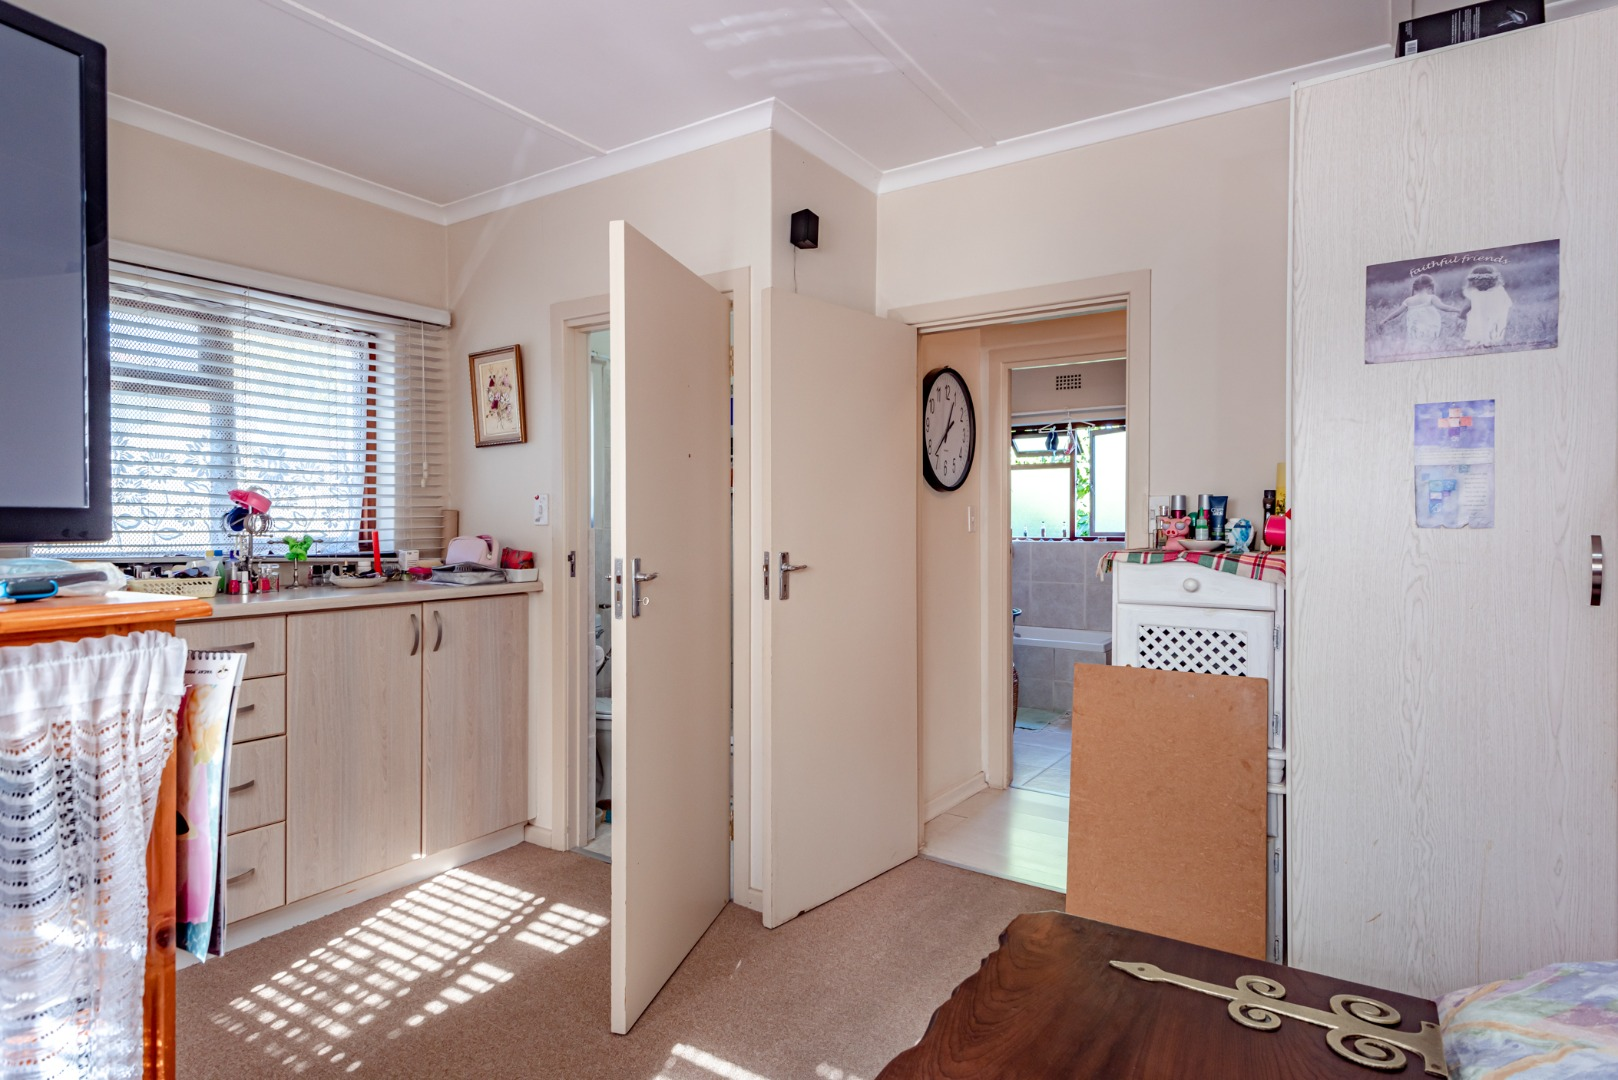 5 Bedroom House For Sale in Old Place